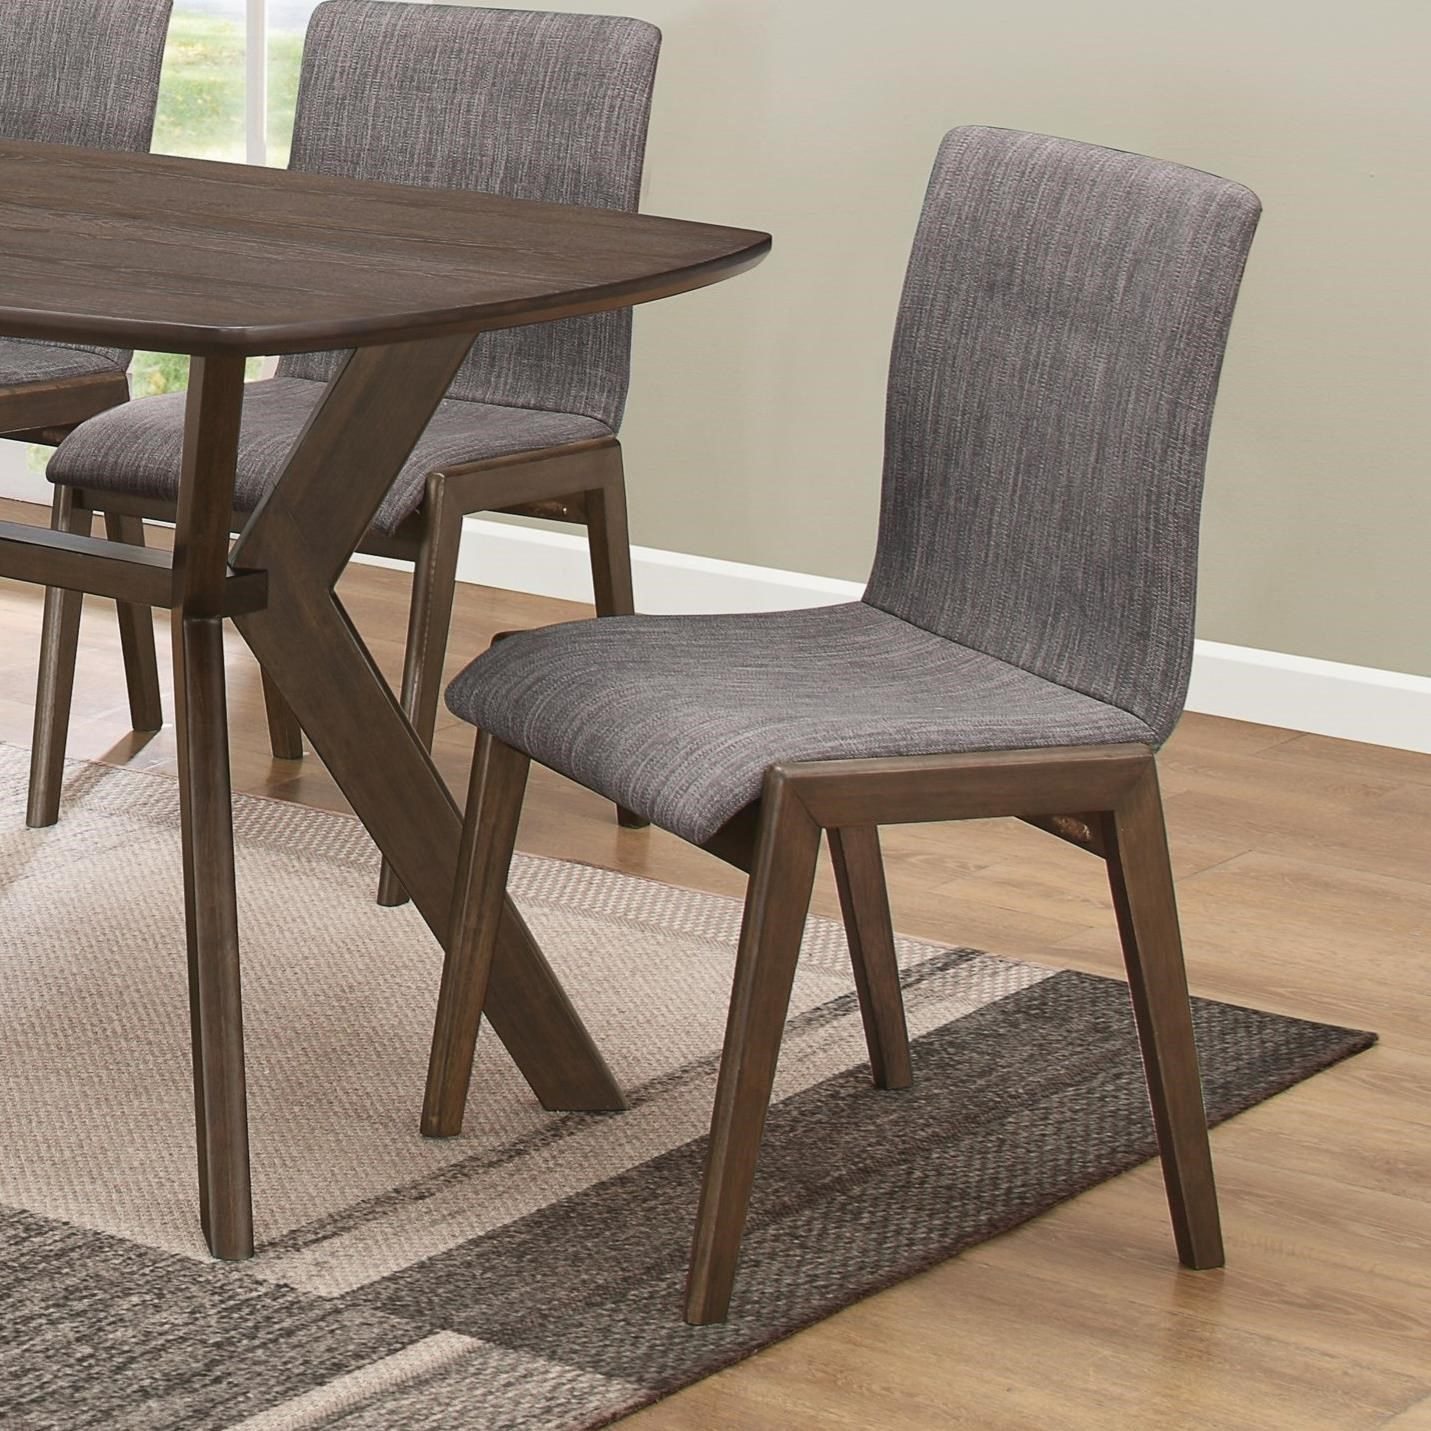 Coaster McBride Retro Dining Side Chair